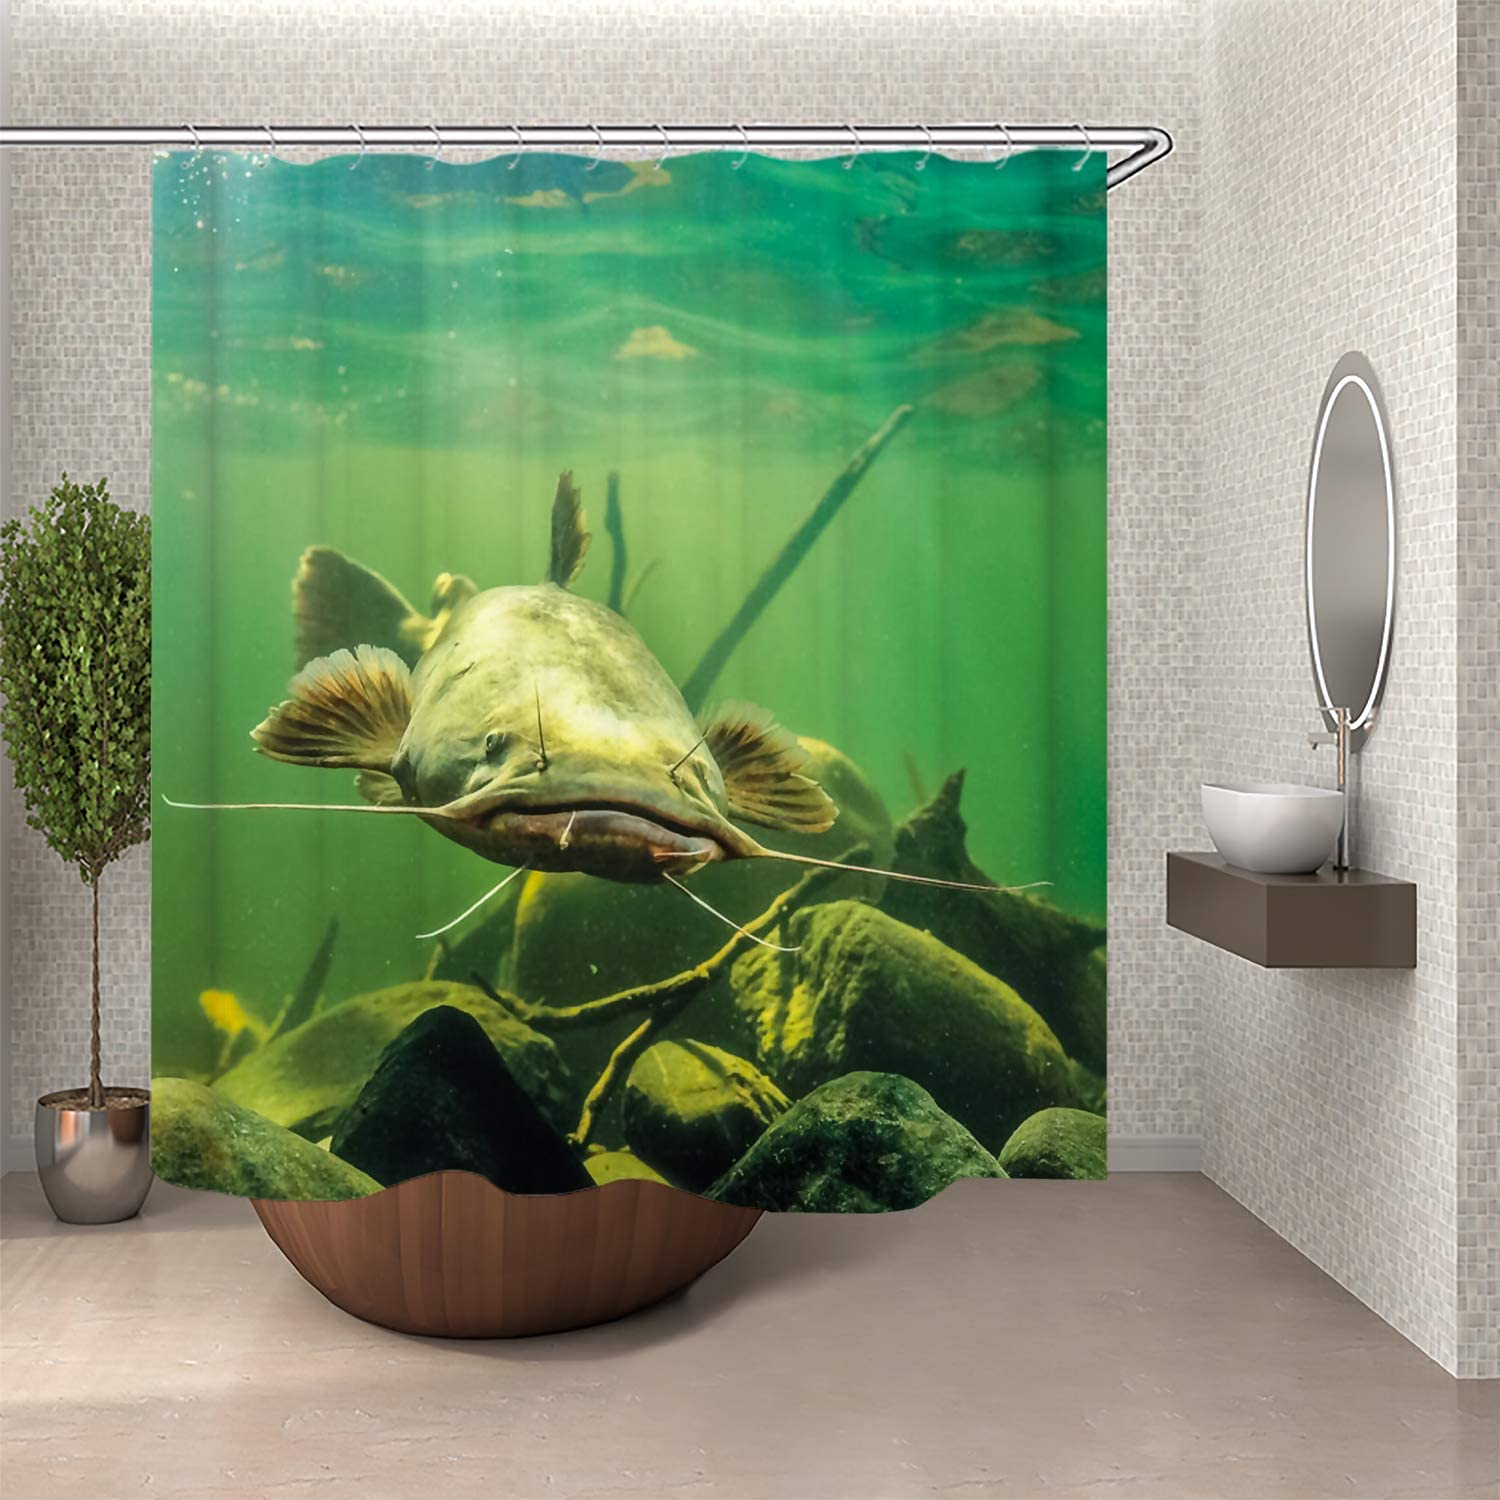 SARA NELL Shower Curtain Set Big in with Ranking TOP8 In stock Catfish Sho Stone River